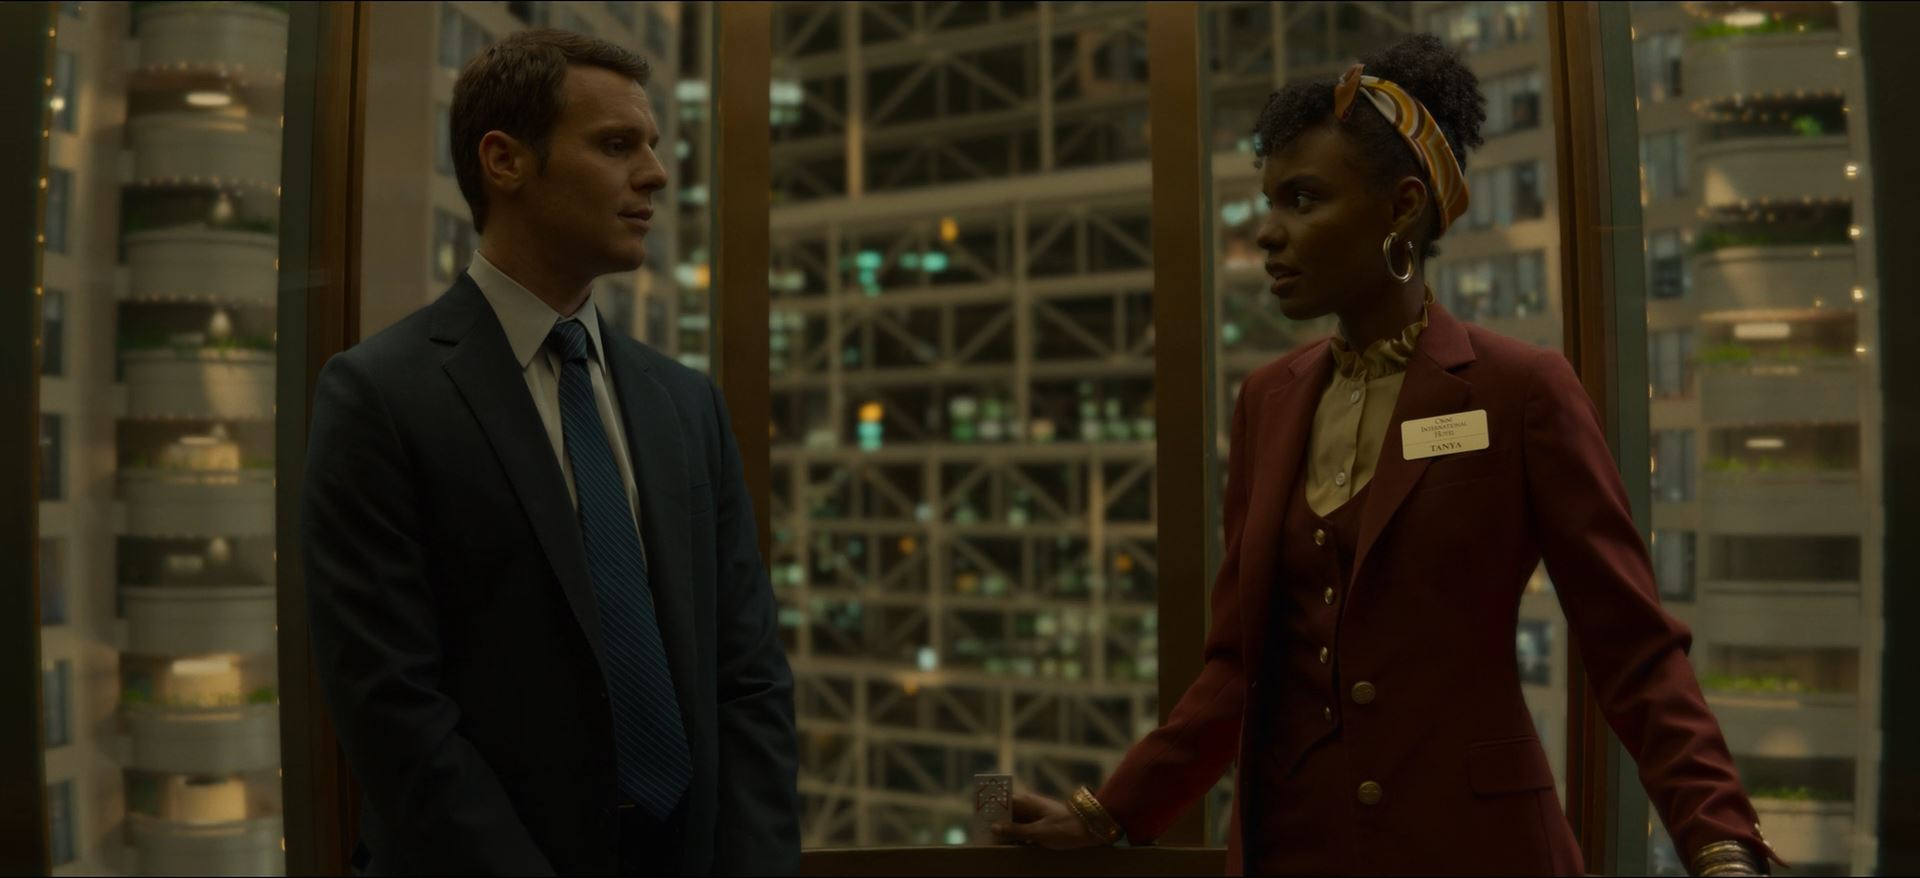 Mindhunter Season 2 Review - Jonathan Groff as Holden Ford